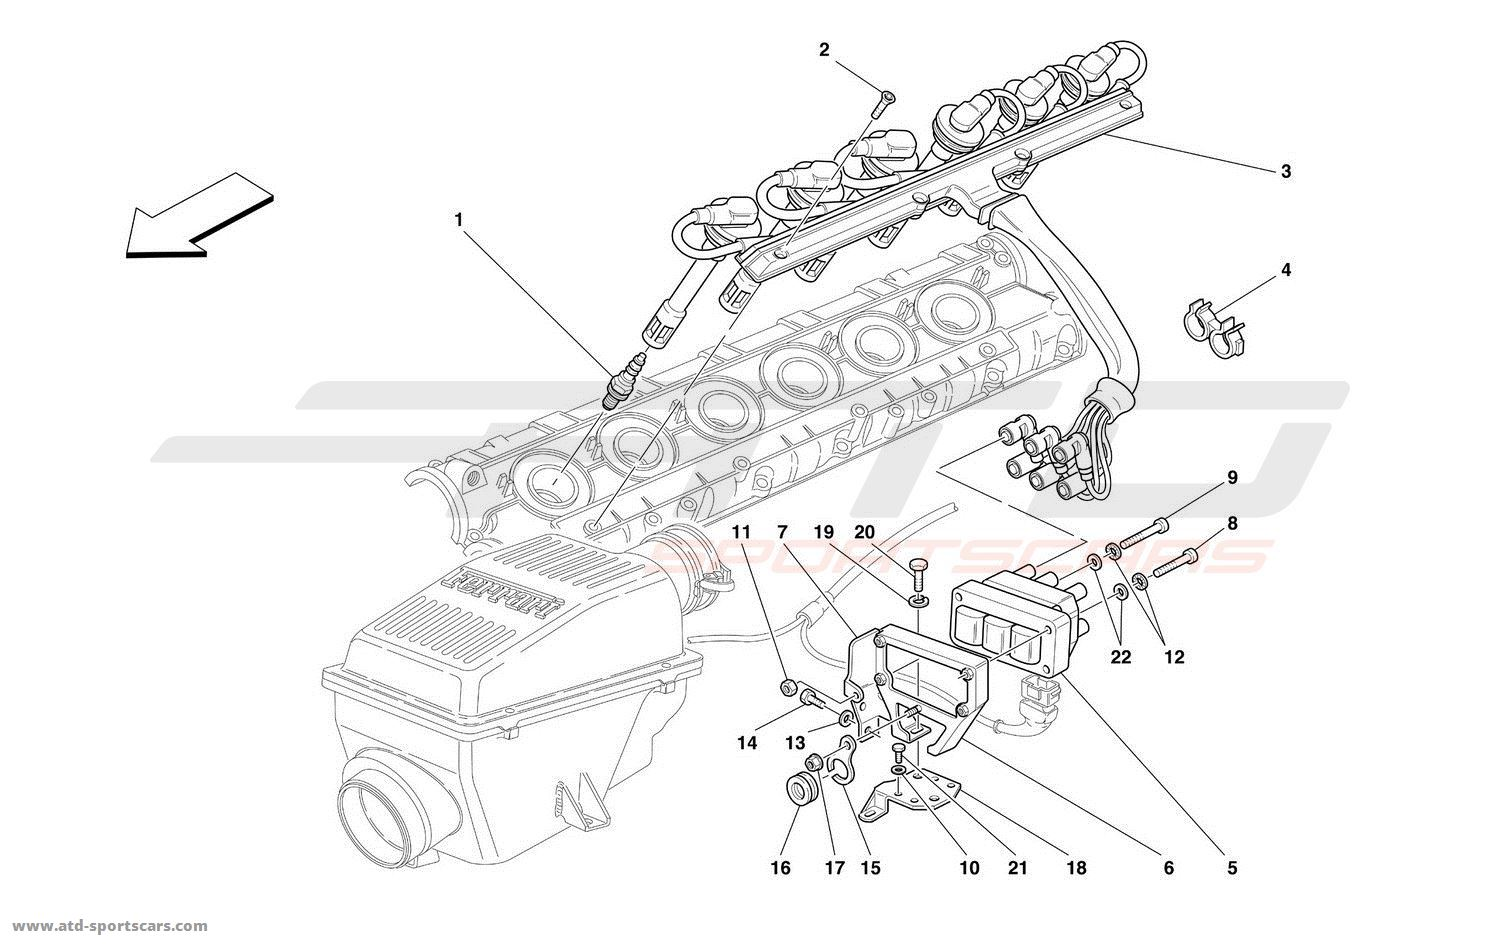 Car Interlock Device Engine Diagram And Wiring Ignition Furthermore Further Impaireddrivingdefencecentre Besides Kenwood Excelon